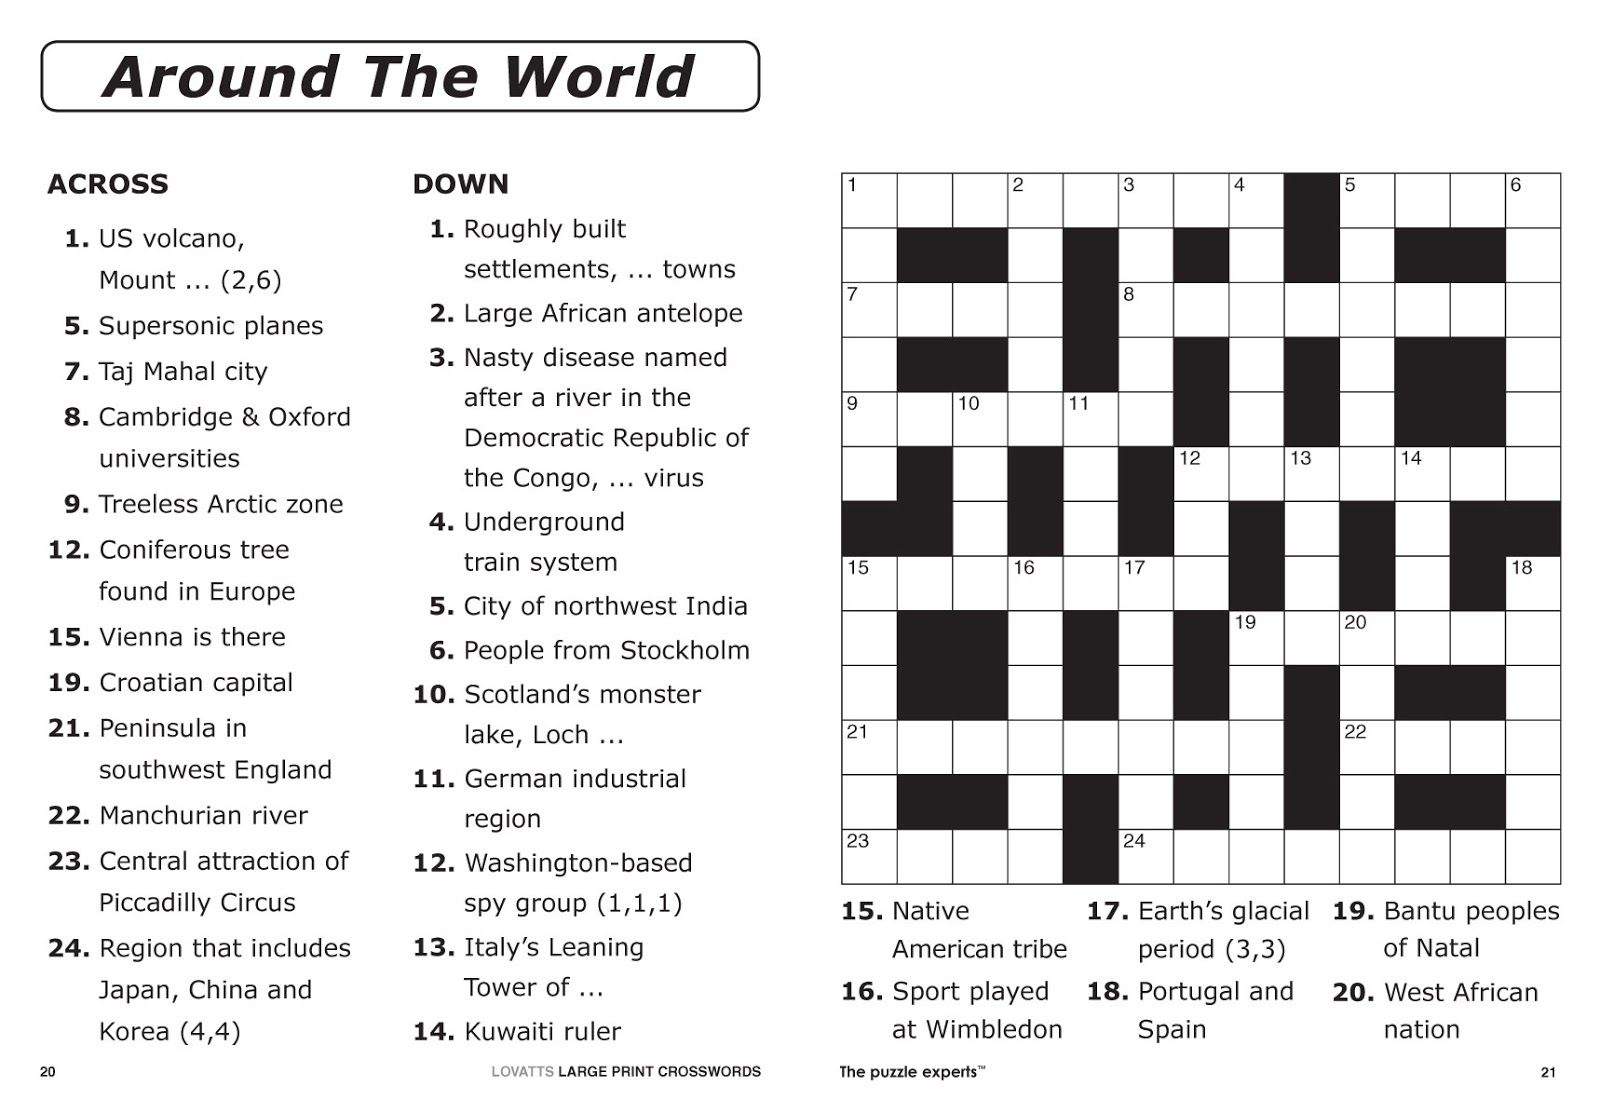 Free Printable Large Print Crossword Puzzles | M3U8 - Printable Crossword Free